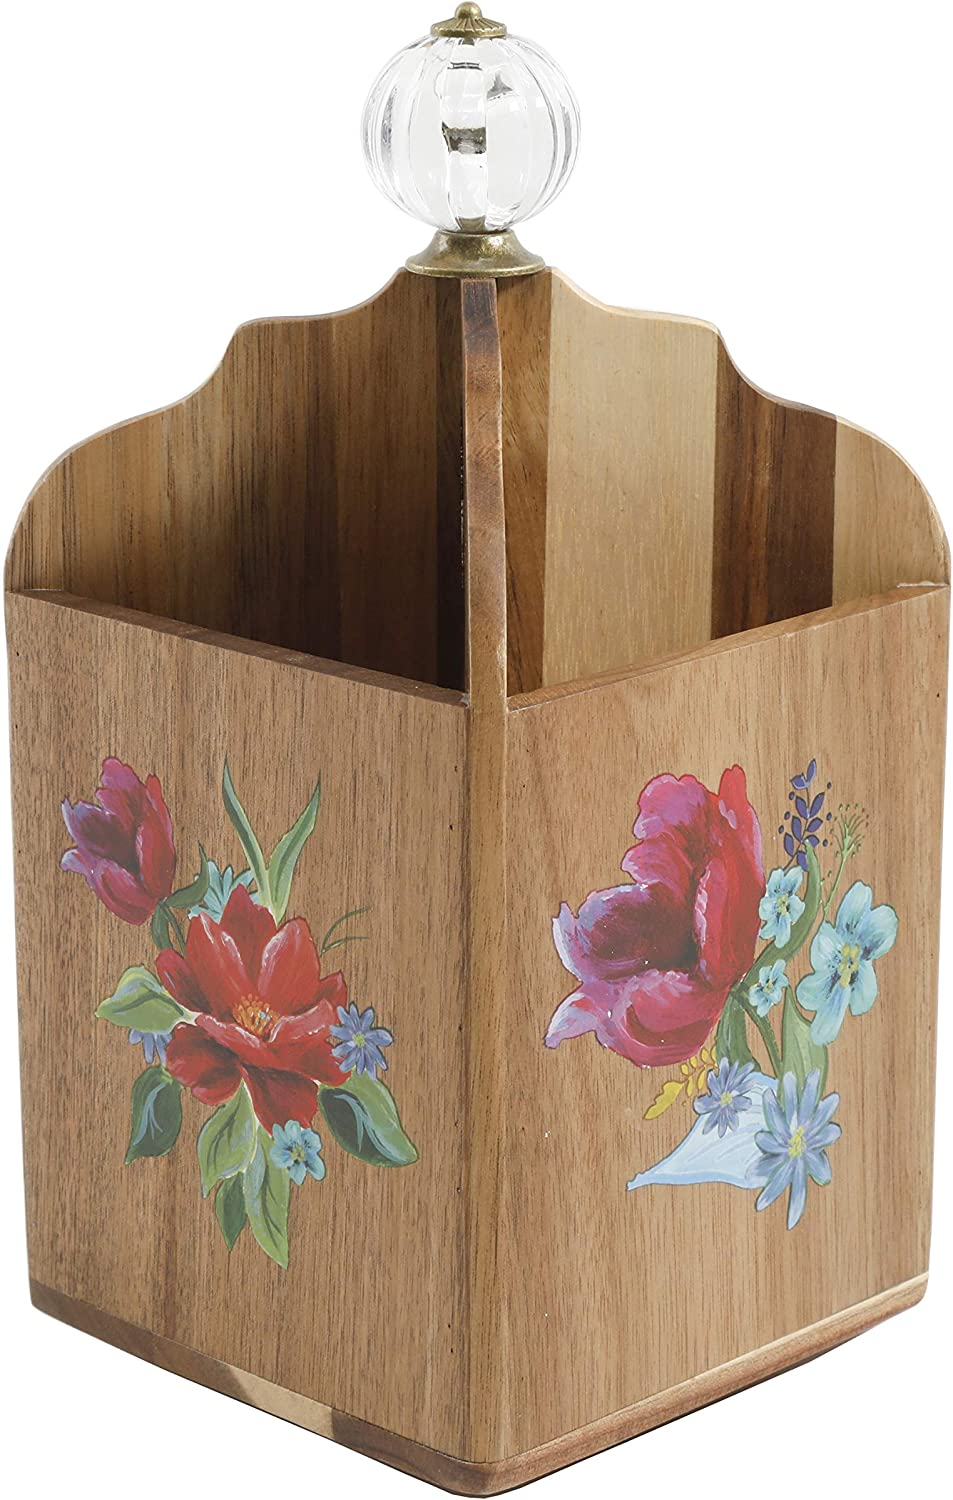 Wooden Utensil Holder Cooking Cookware Kitchen by The Pioneer Woman